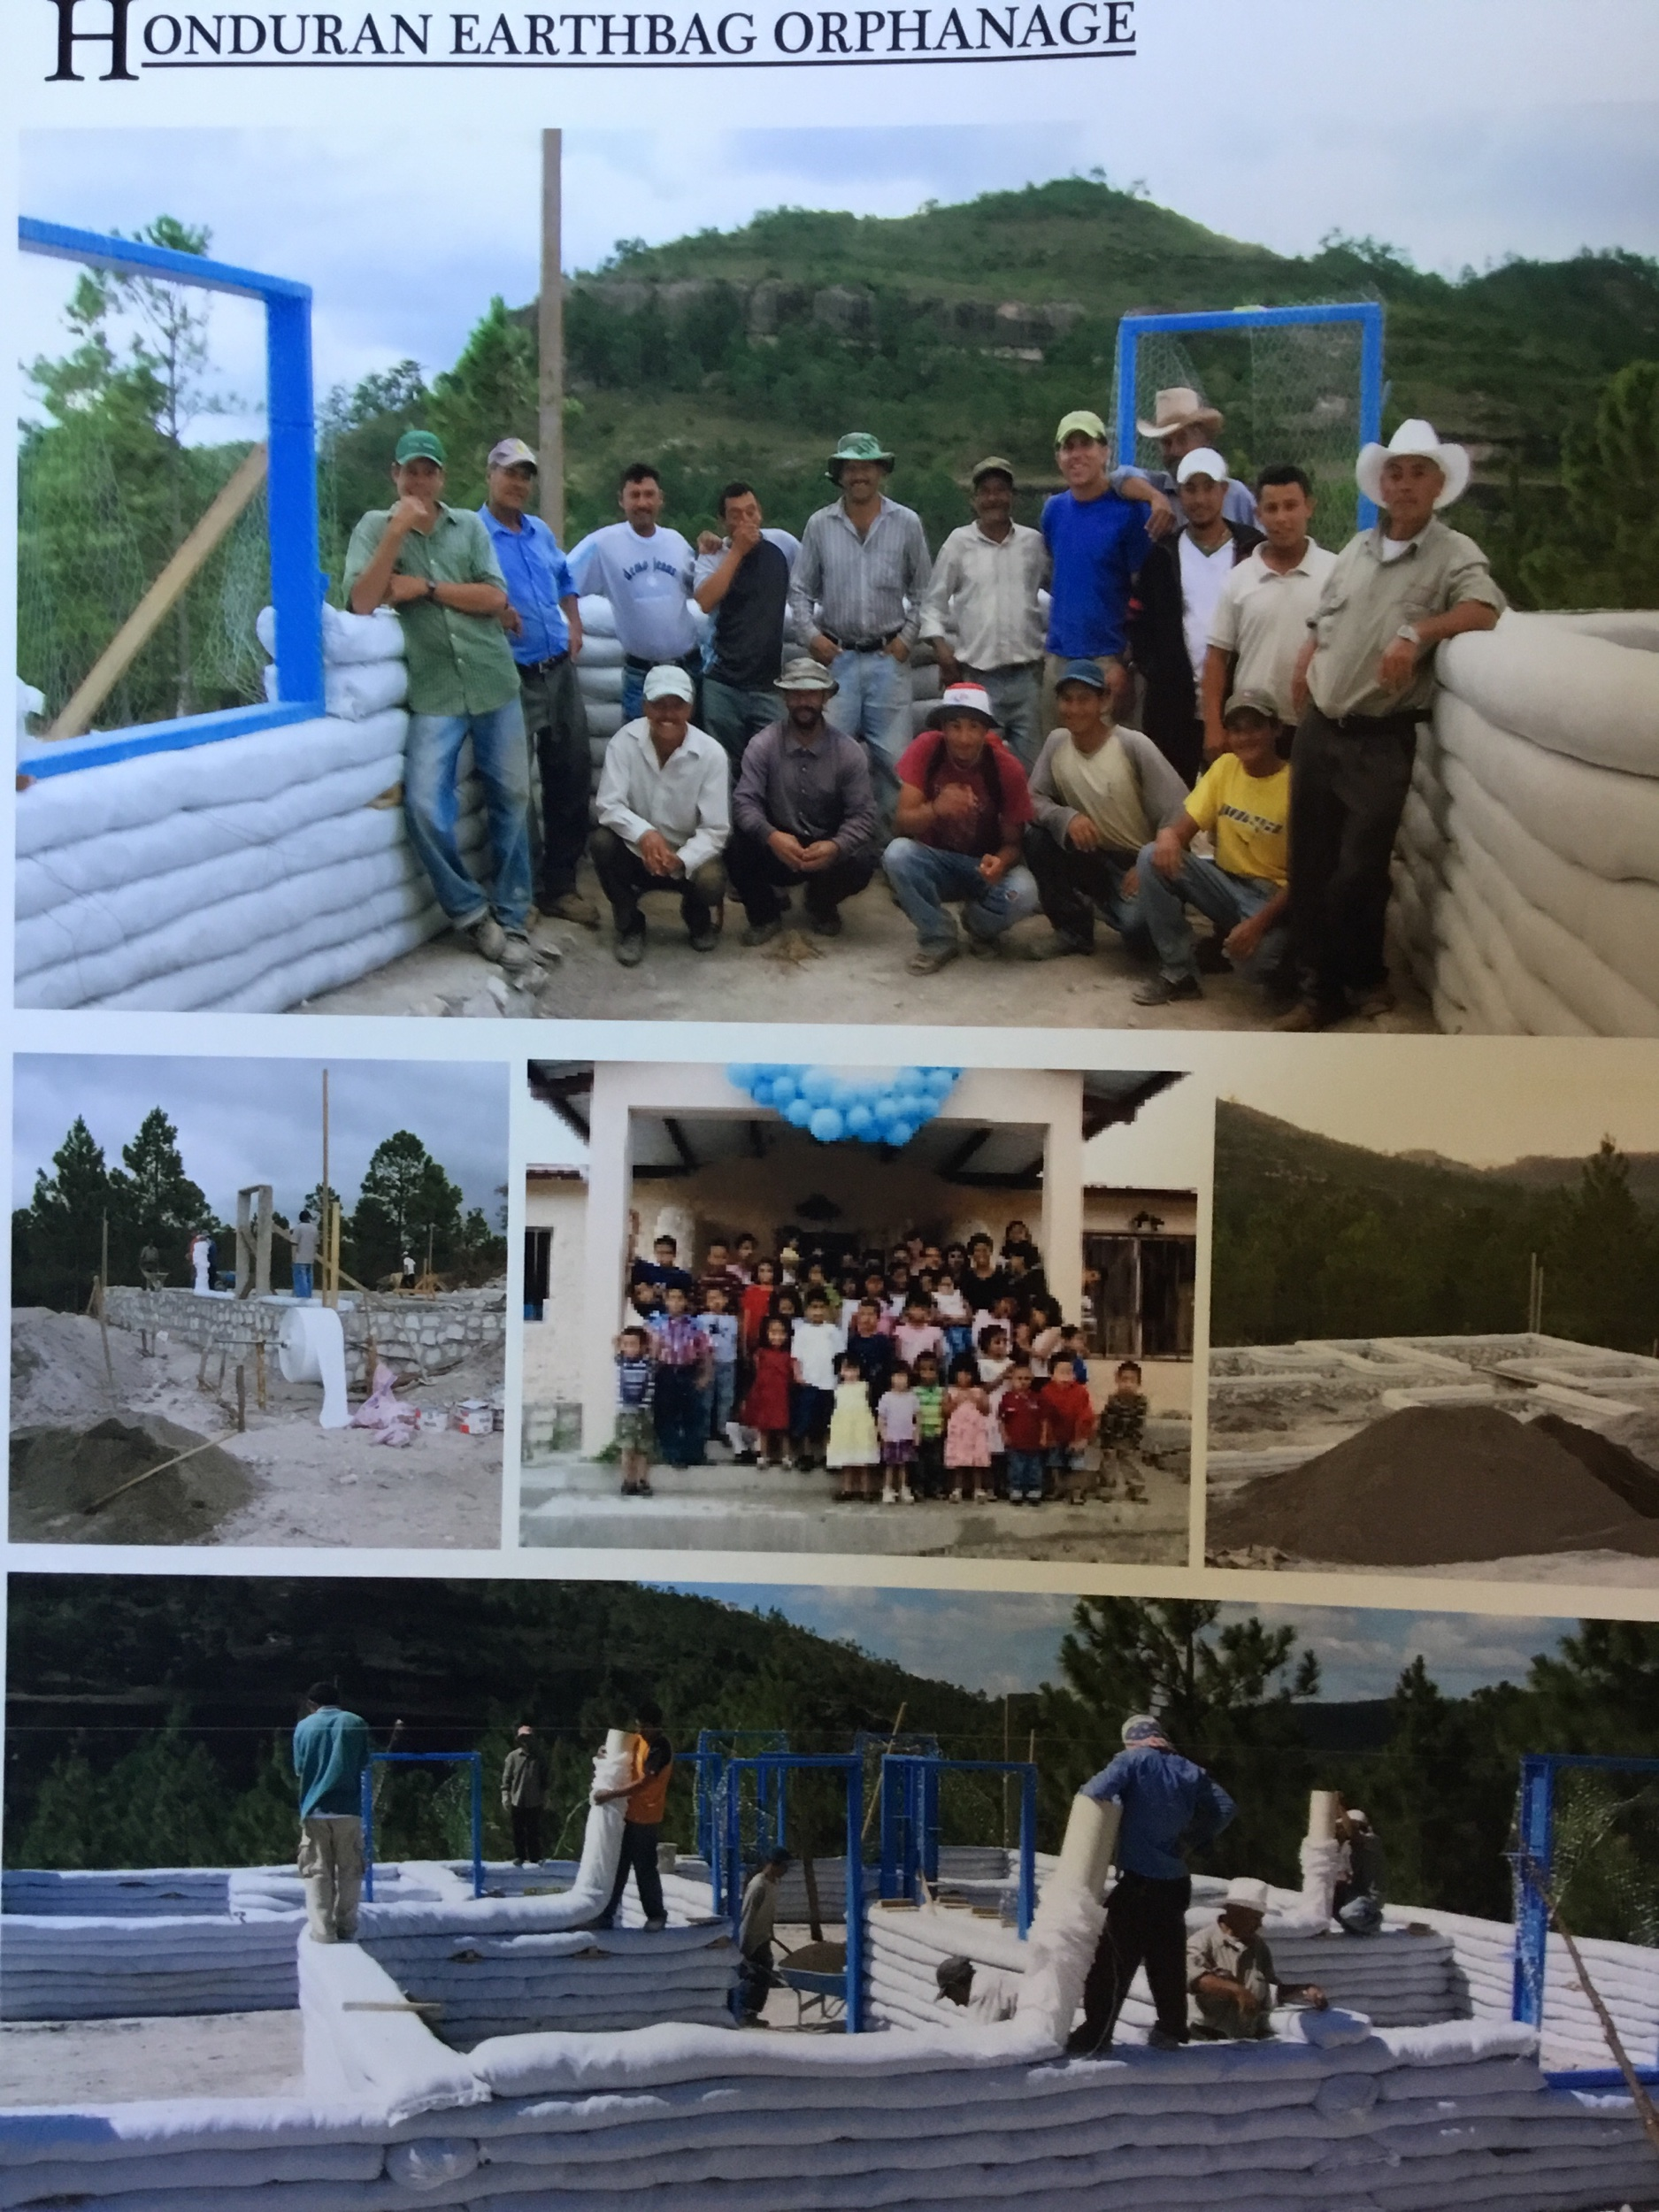 2007. 2229 square foot, 9 rooms, 14 windows. This was built for the children of the Lamb institute in Tegucigalpa, to live 26km outside the city, and to resist flooding and hurricanes.